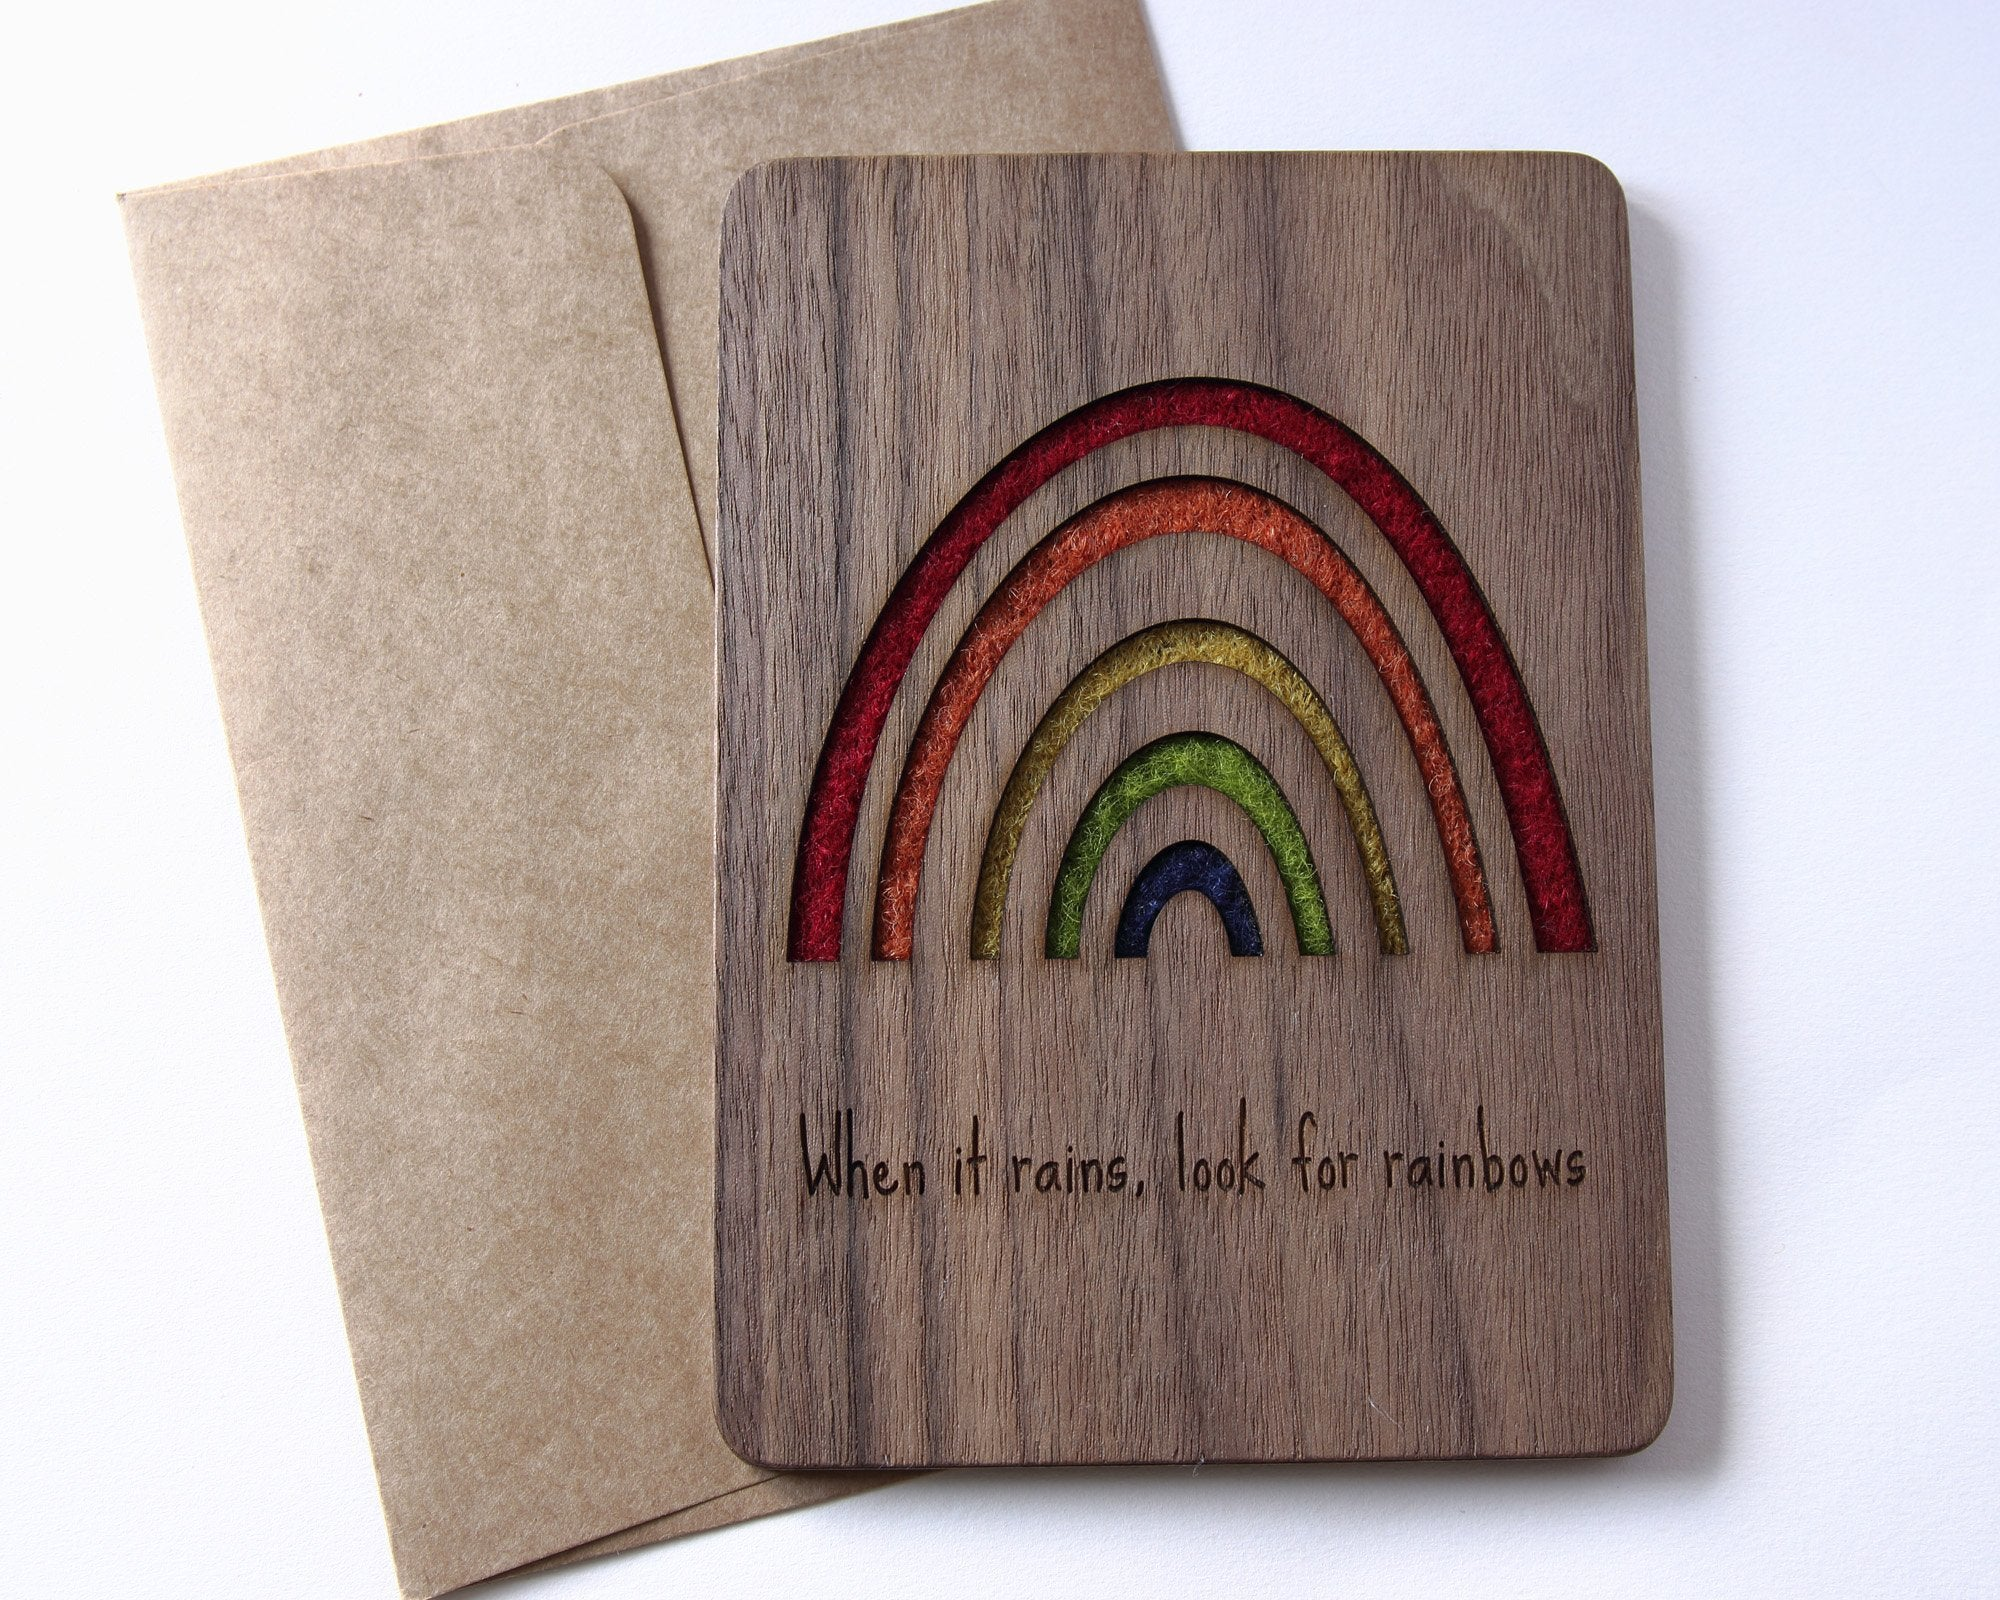 Rainbow wood card with positive message